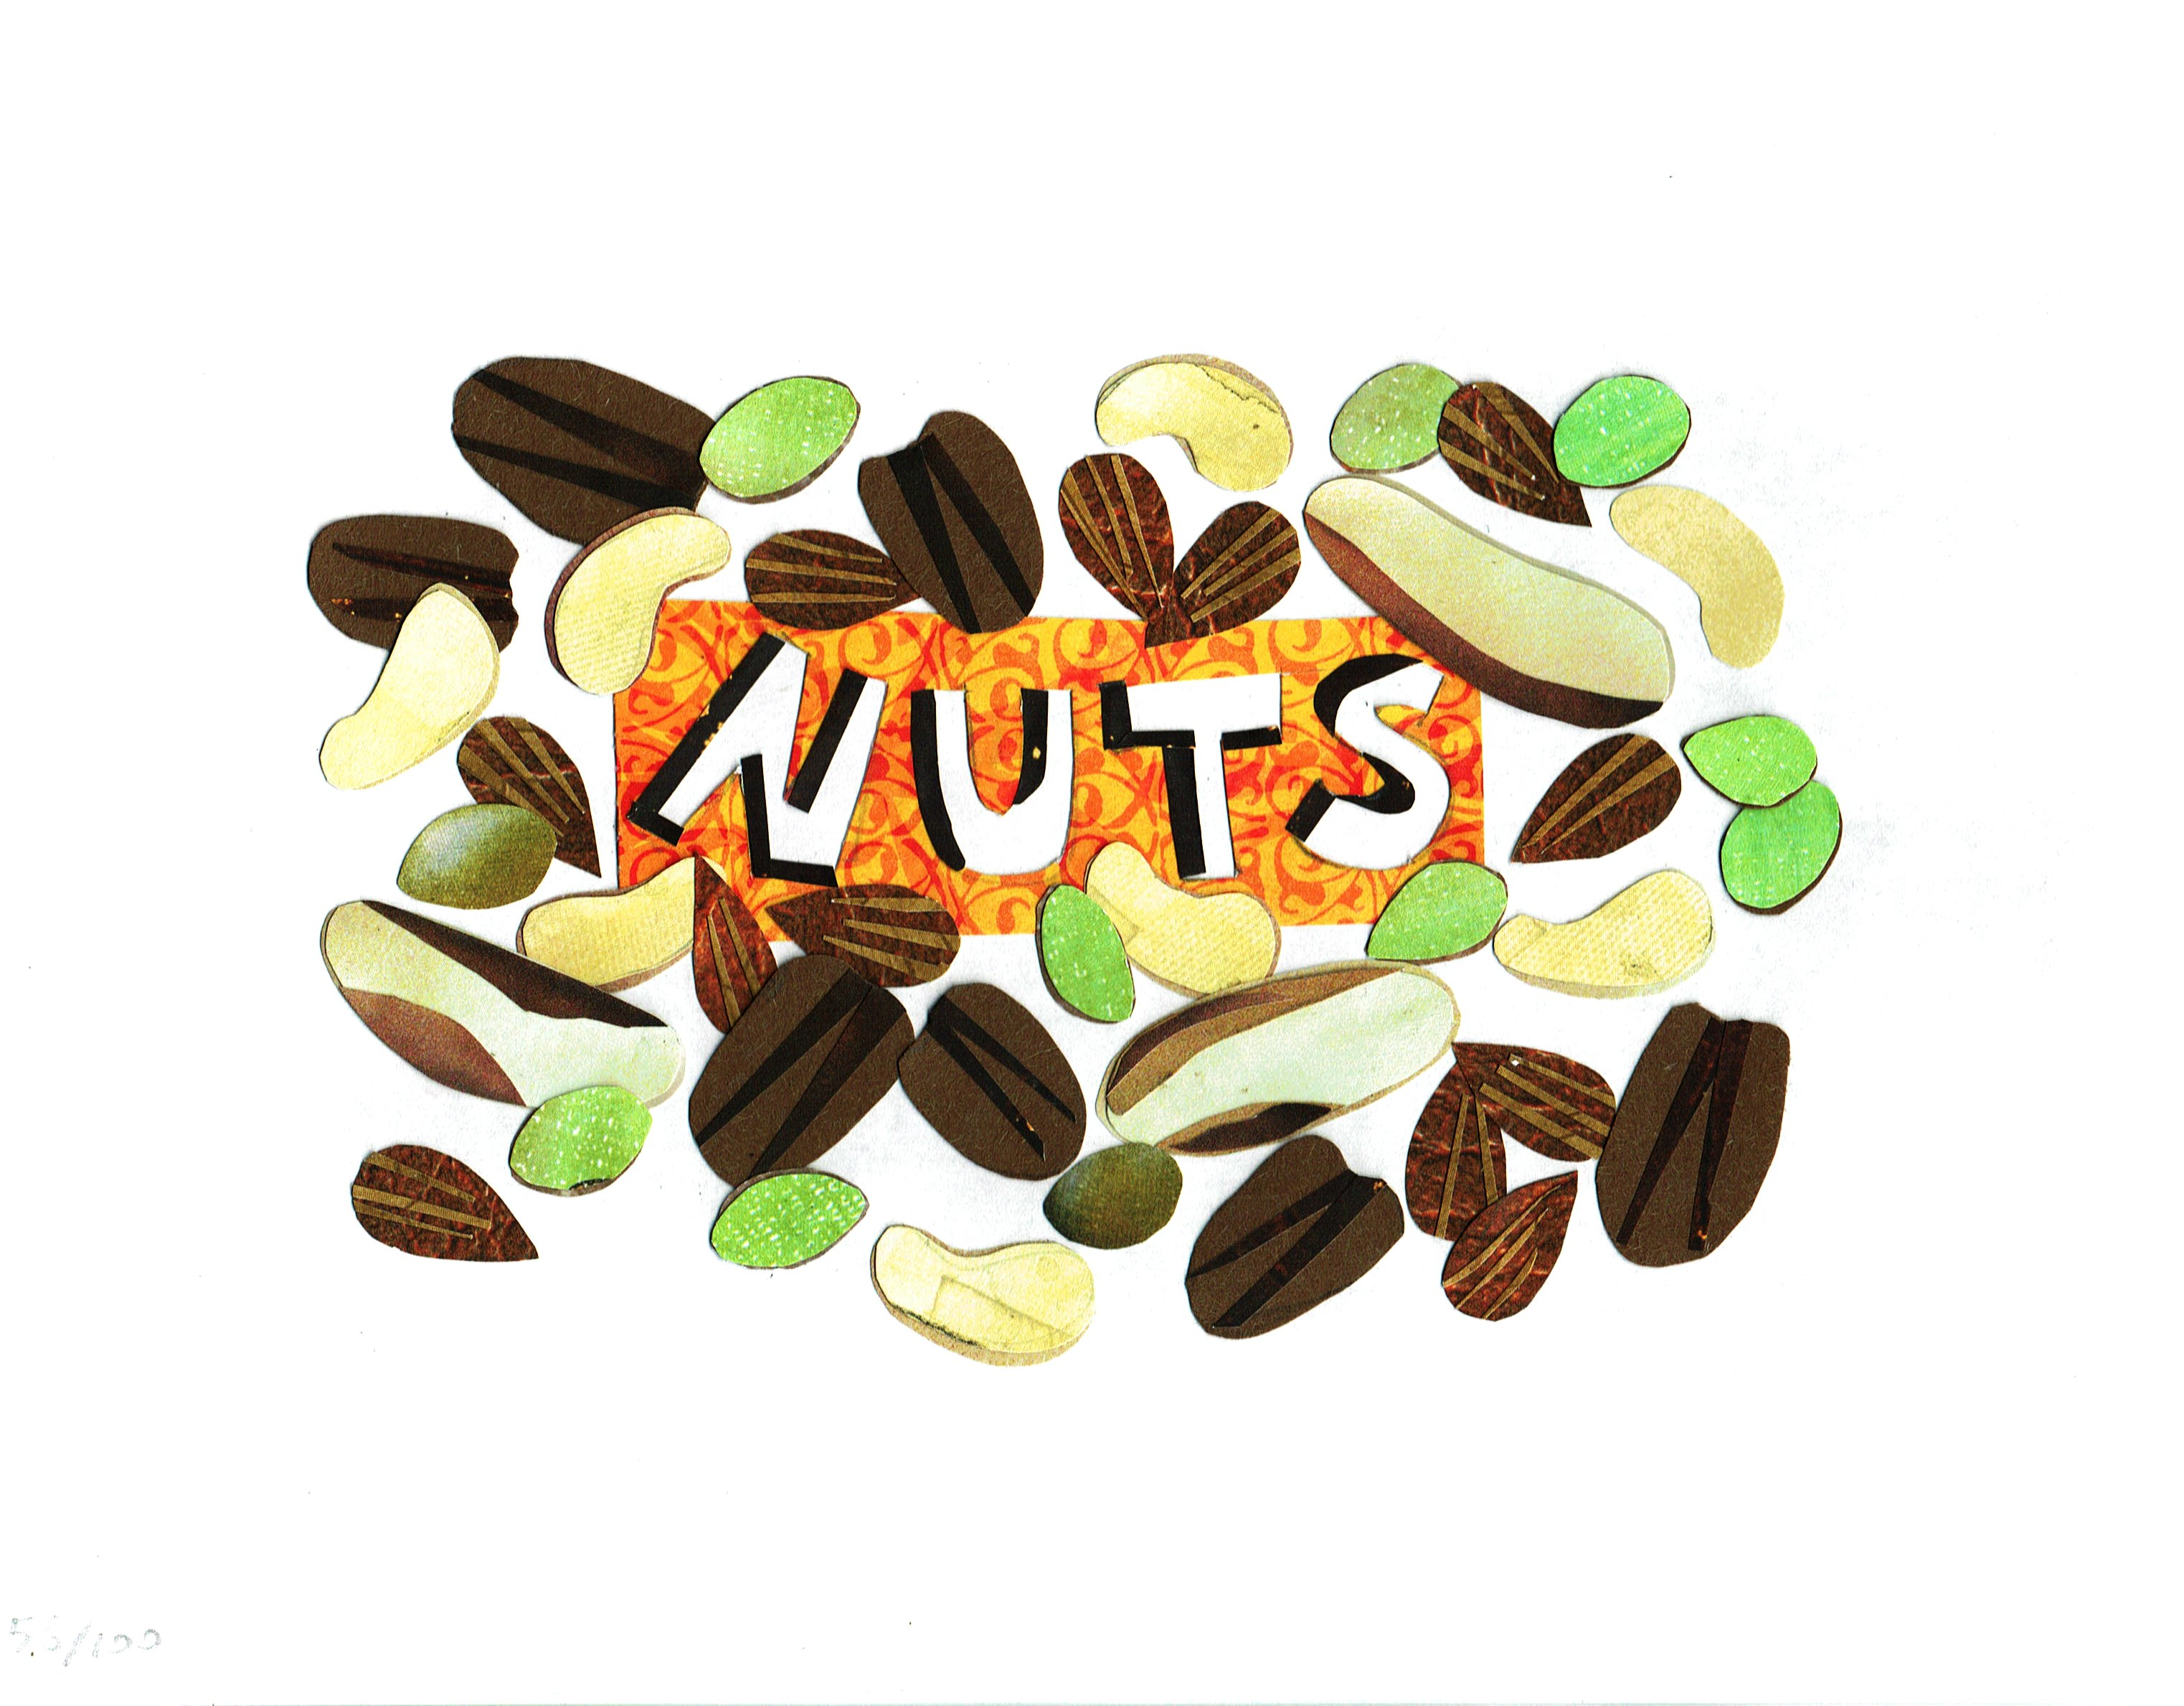 Day 56 - Nuts